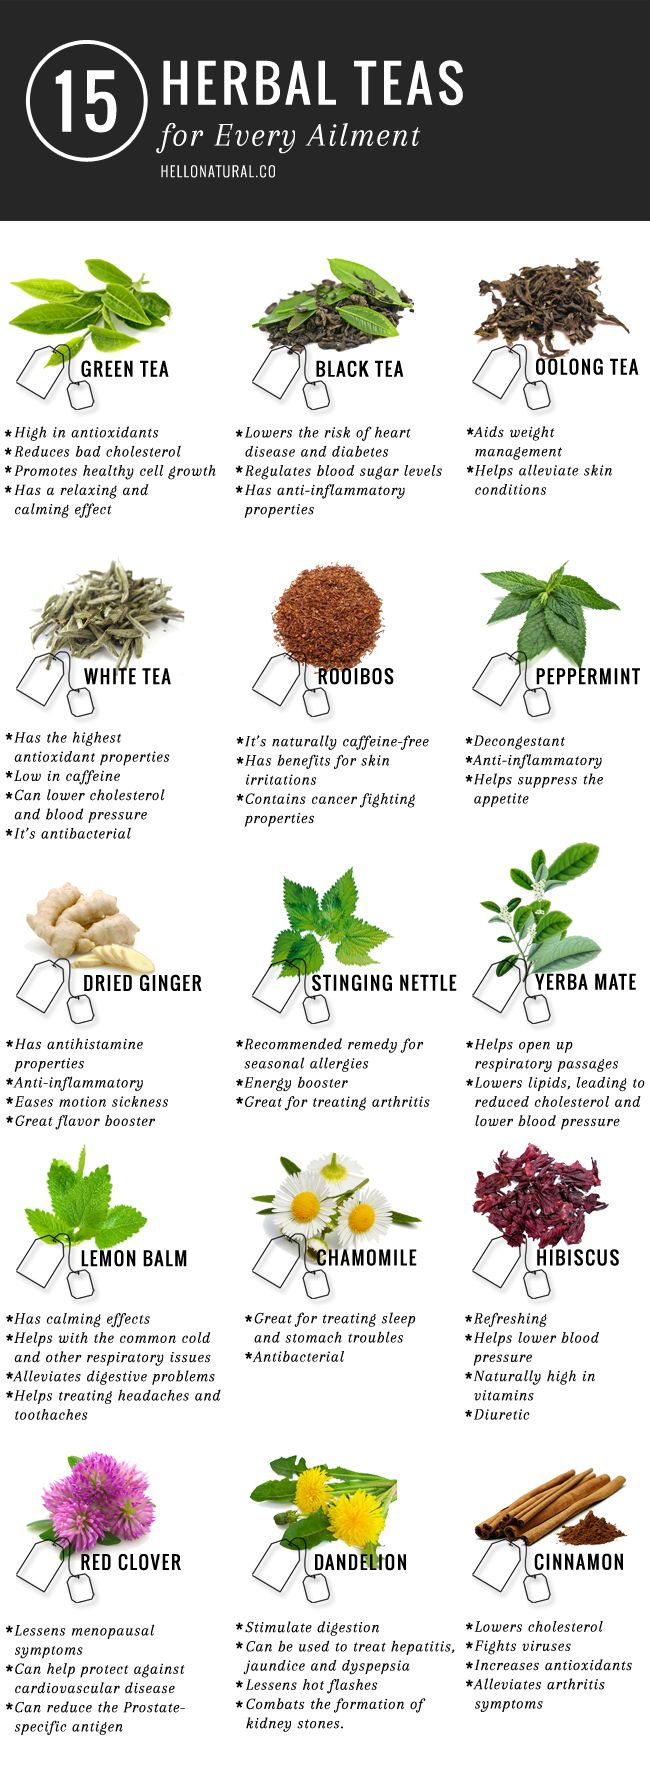 [ FLASH SALE] >> $55 << 28 DAY BODY TRANSFORMATION HERBAL TEA BLEND >>> http://www.detoxmetea.com/products/28-day-detox-tea <<<